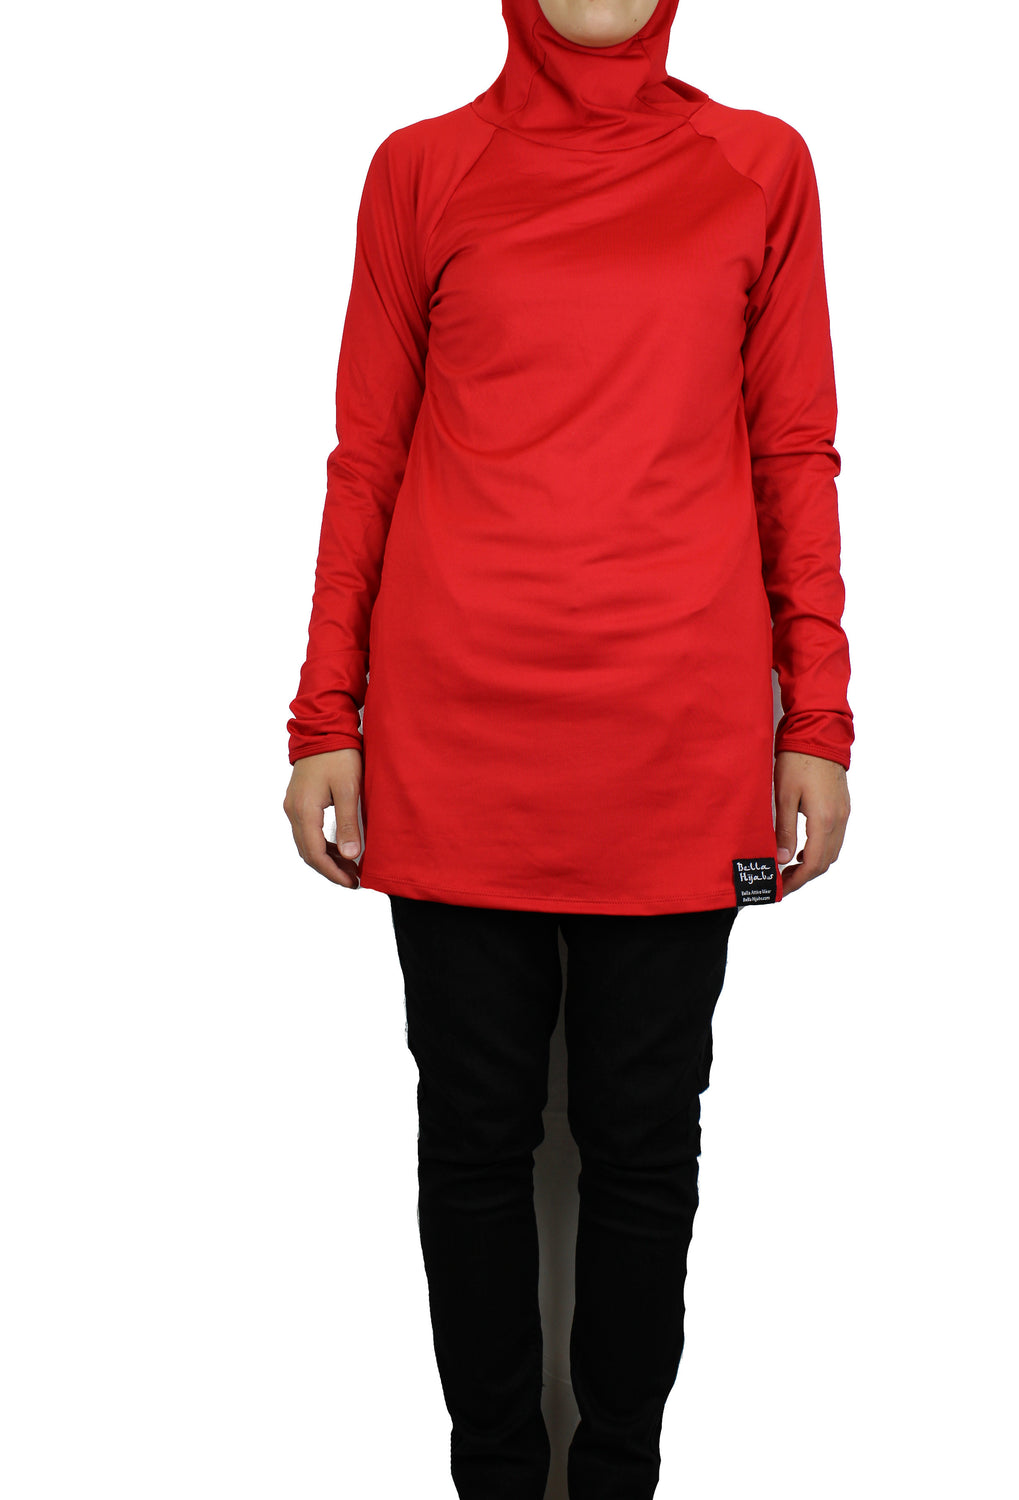 Attivo Hooded Workout Top - Red